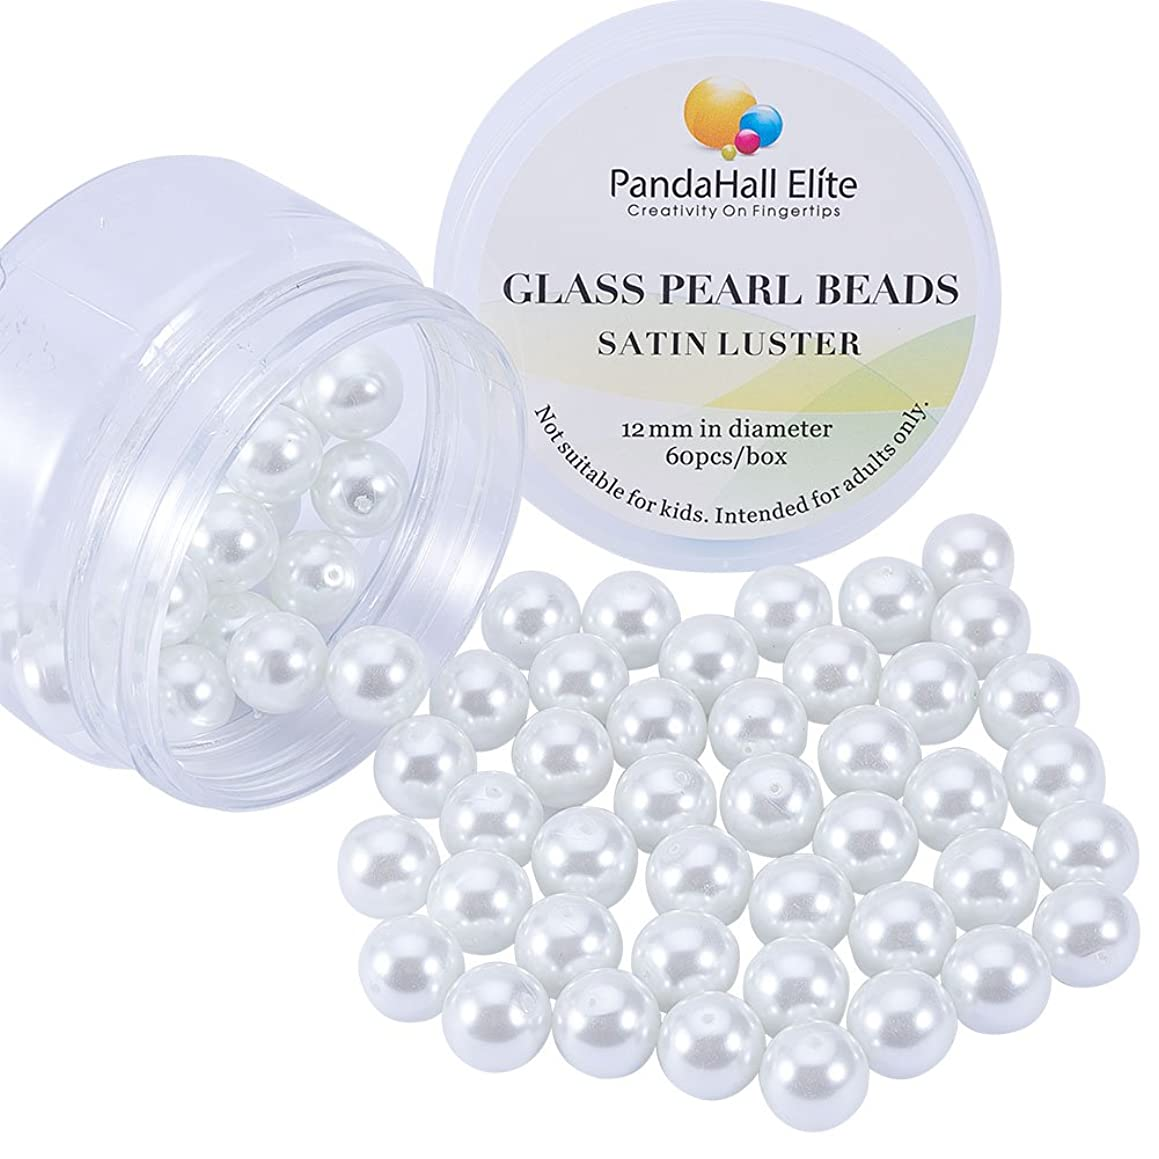 PandaHall Elite 12mm About 60 Pcs Tiny Satin Luster Dyed Glass Pearl Round Loose Beads Assorted Lot for Jewelry Making White